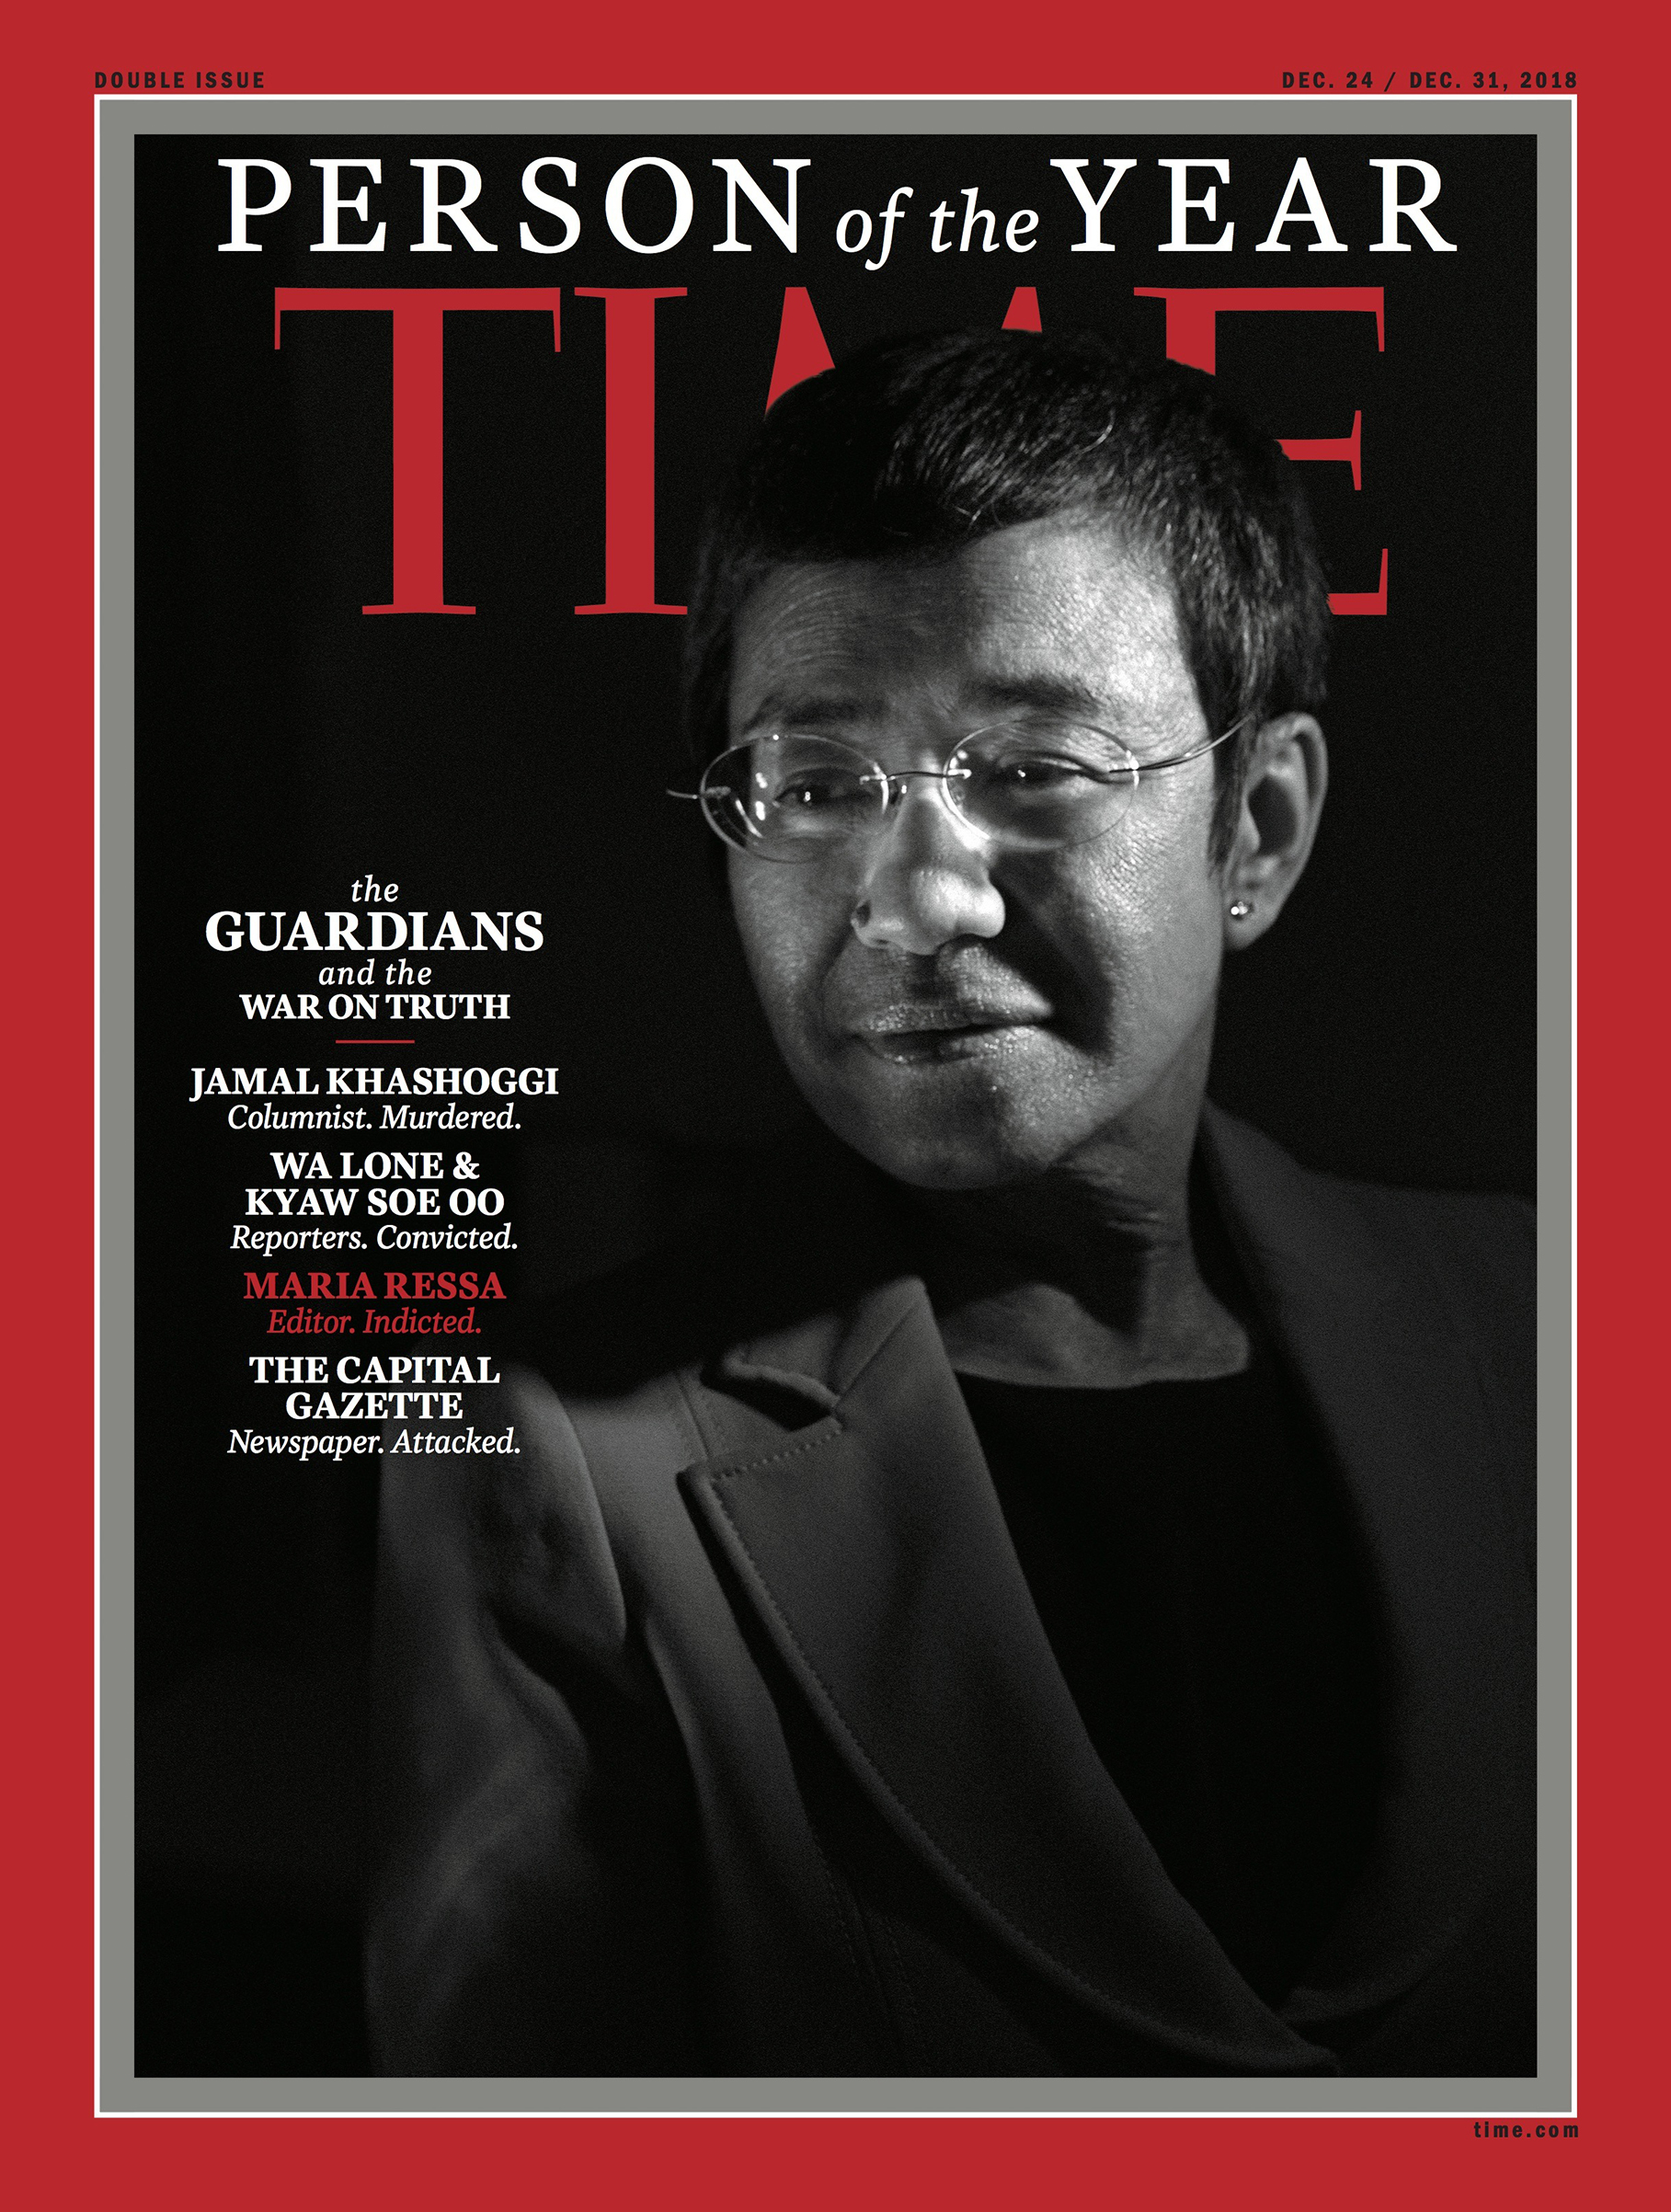 Ressa was among the journalists on TIME's 2018 Person of the Year covers